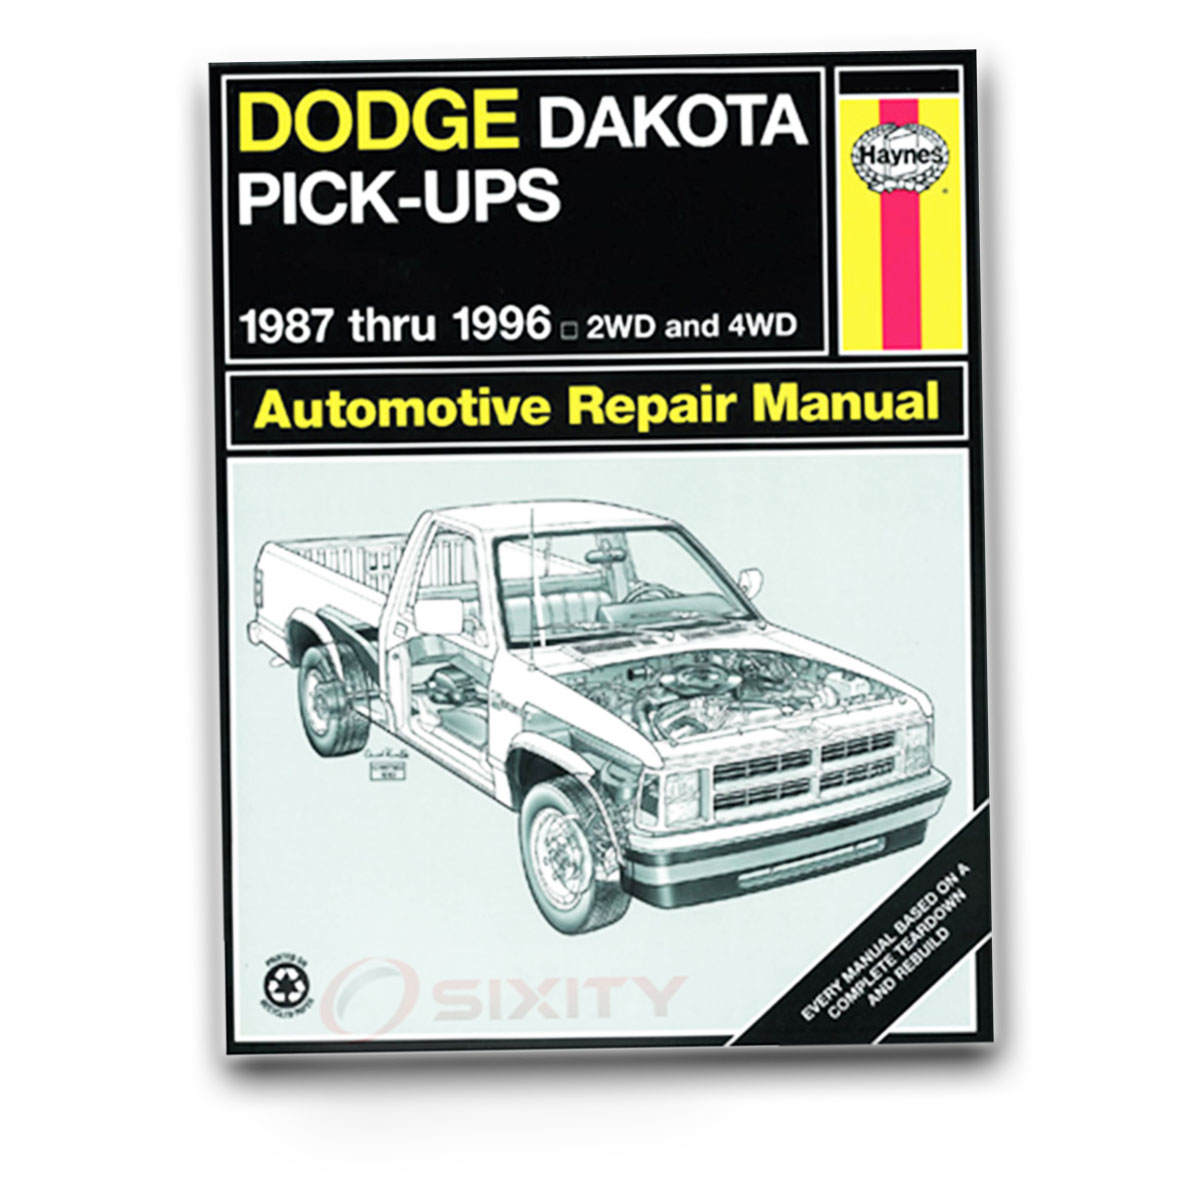 Haynes Repair Manual for Dodge Dakota SLT Base WS Sport LE SE Shelby Shop bo